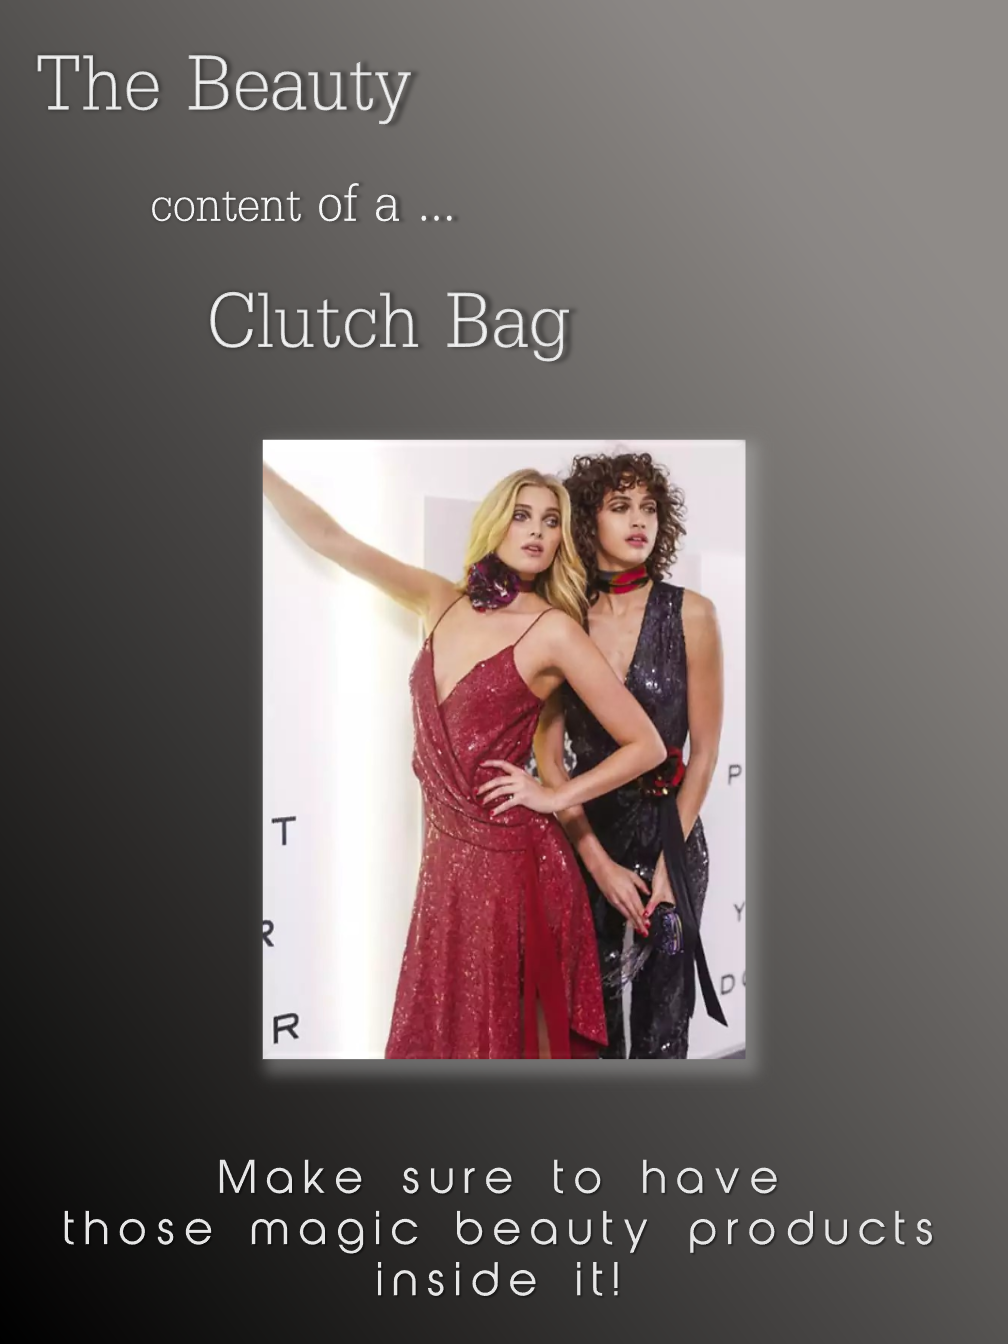 Clutch Bags... Contents